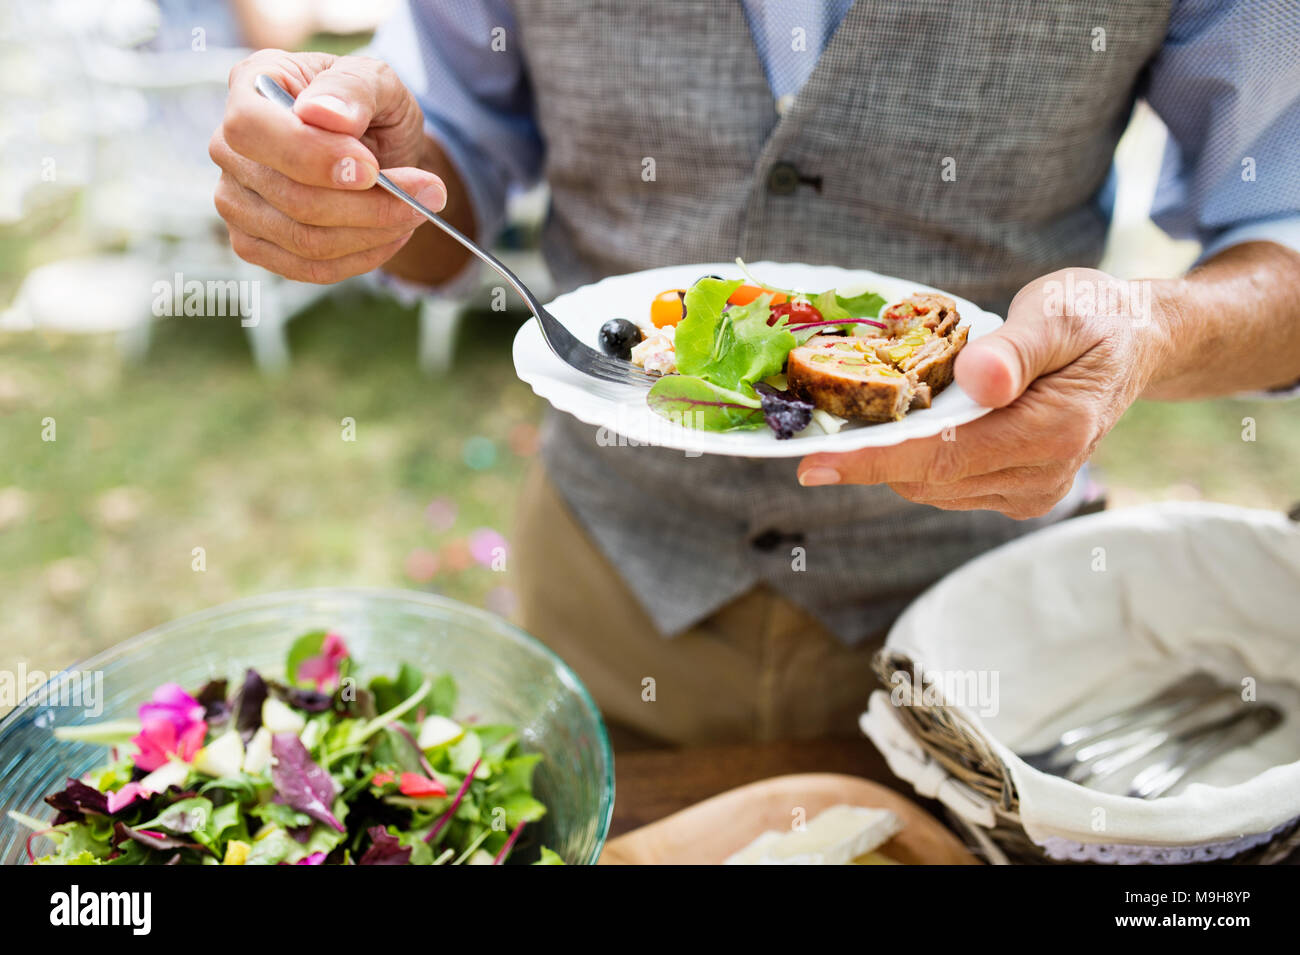 Unrecognizable man with a plate with food. Family celebration outside in the backyard. Big garden party. - Stock Image